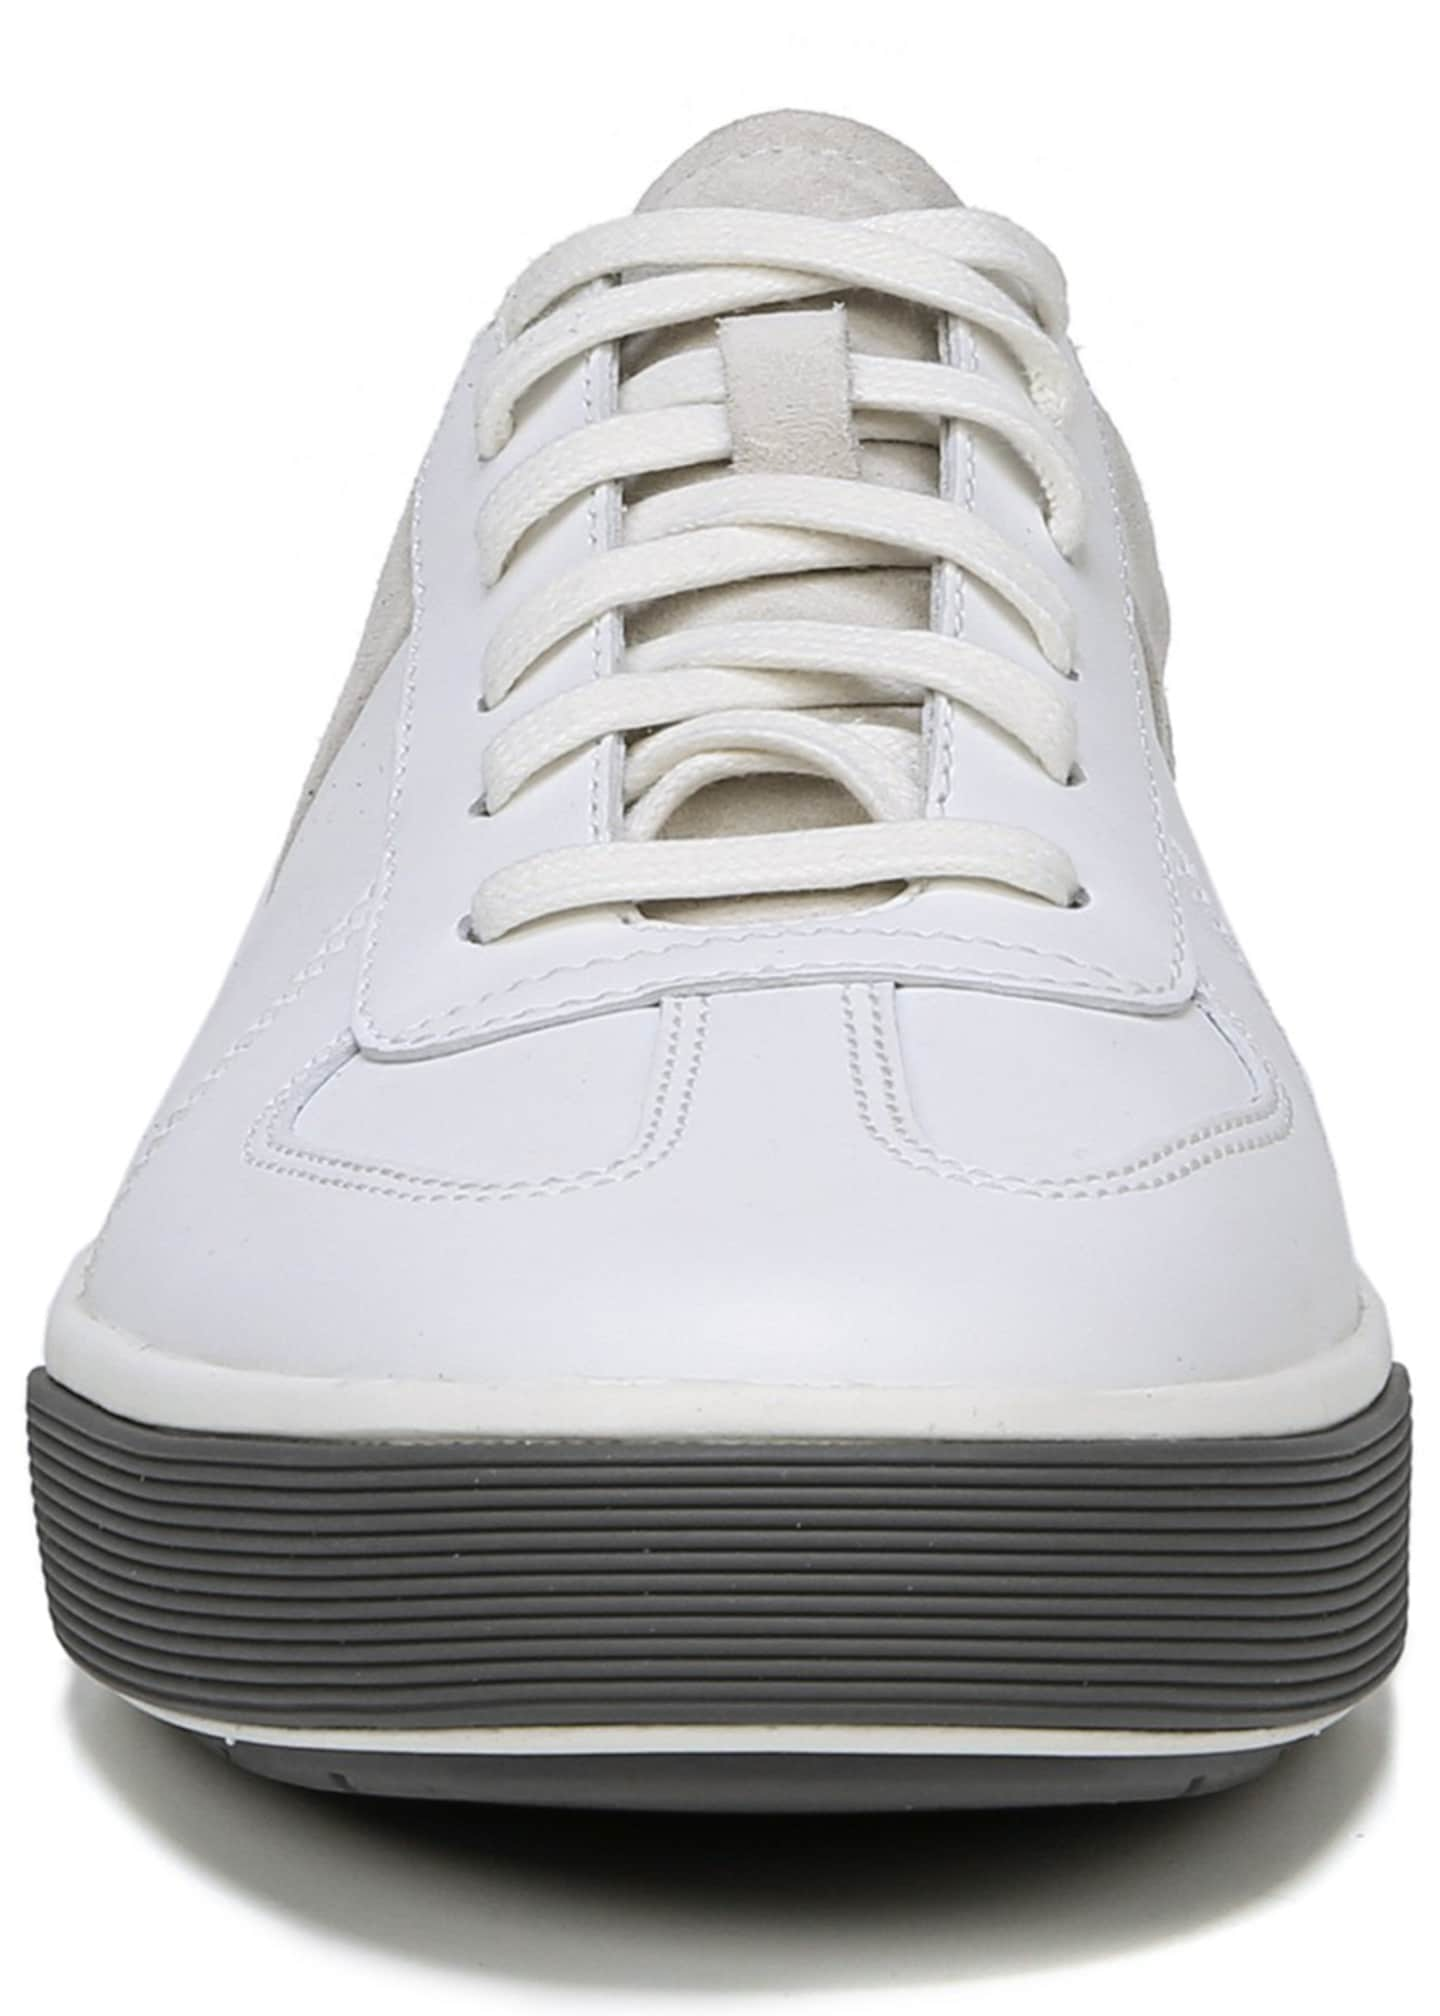 Image 3 of 5: Men's Rogue Suede & Leather Low-Top Sneakers